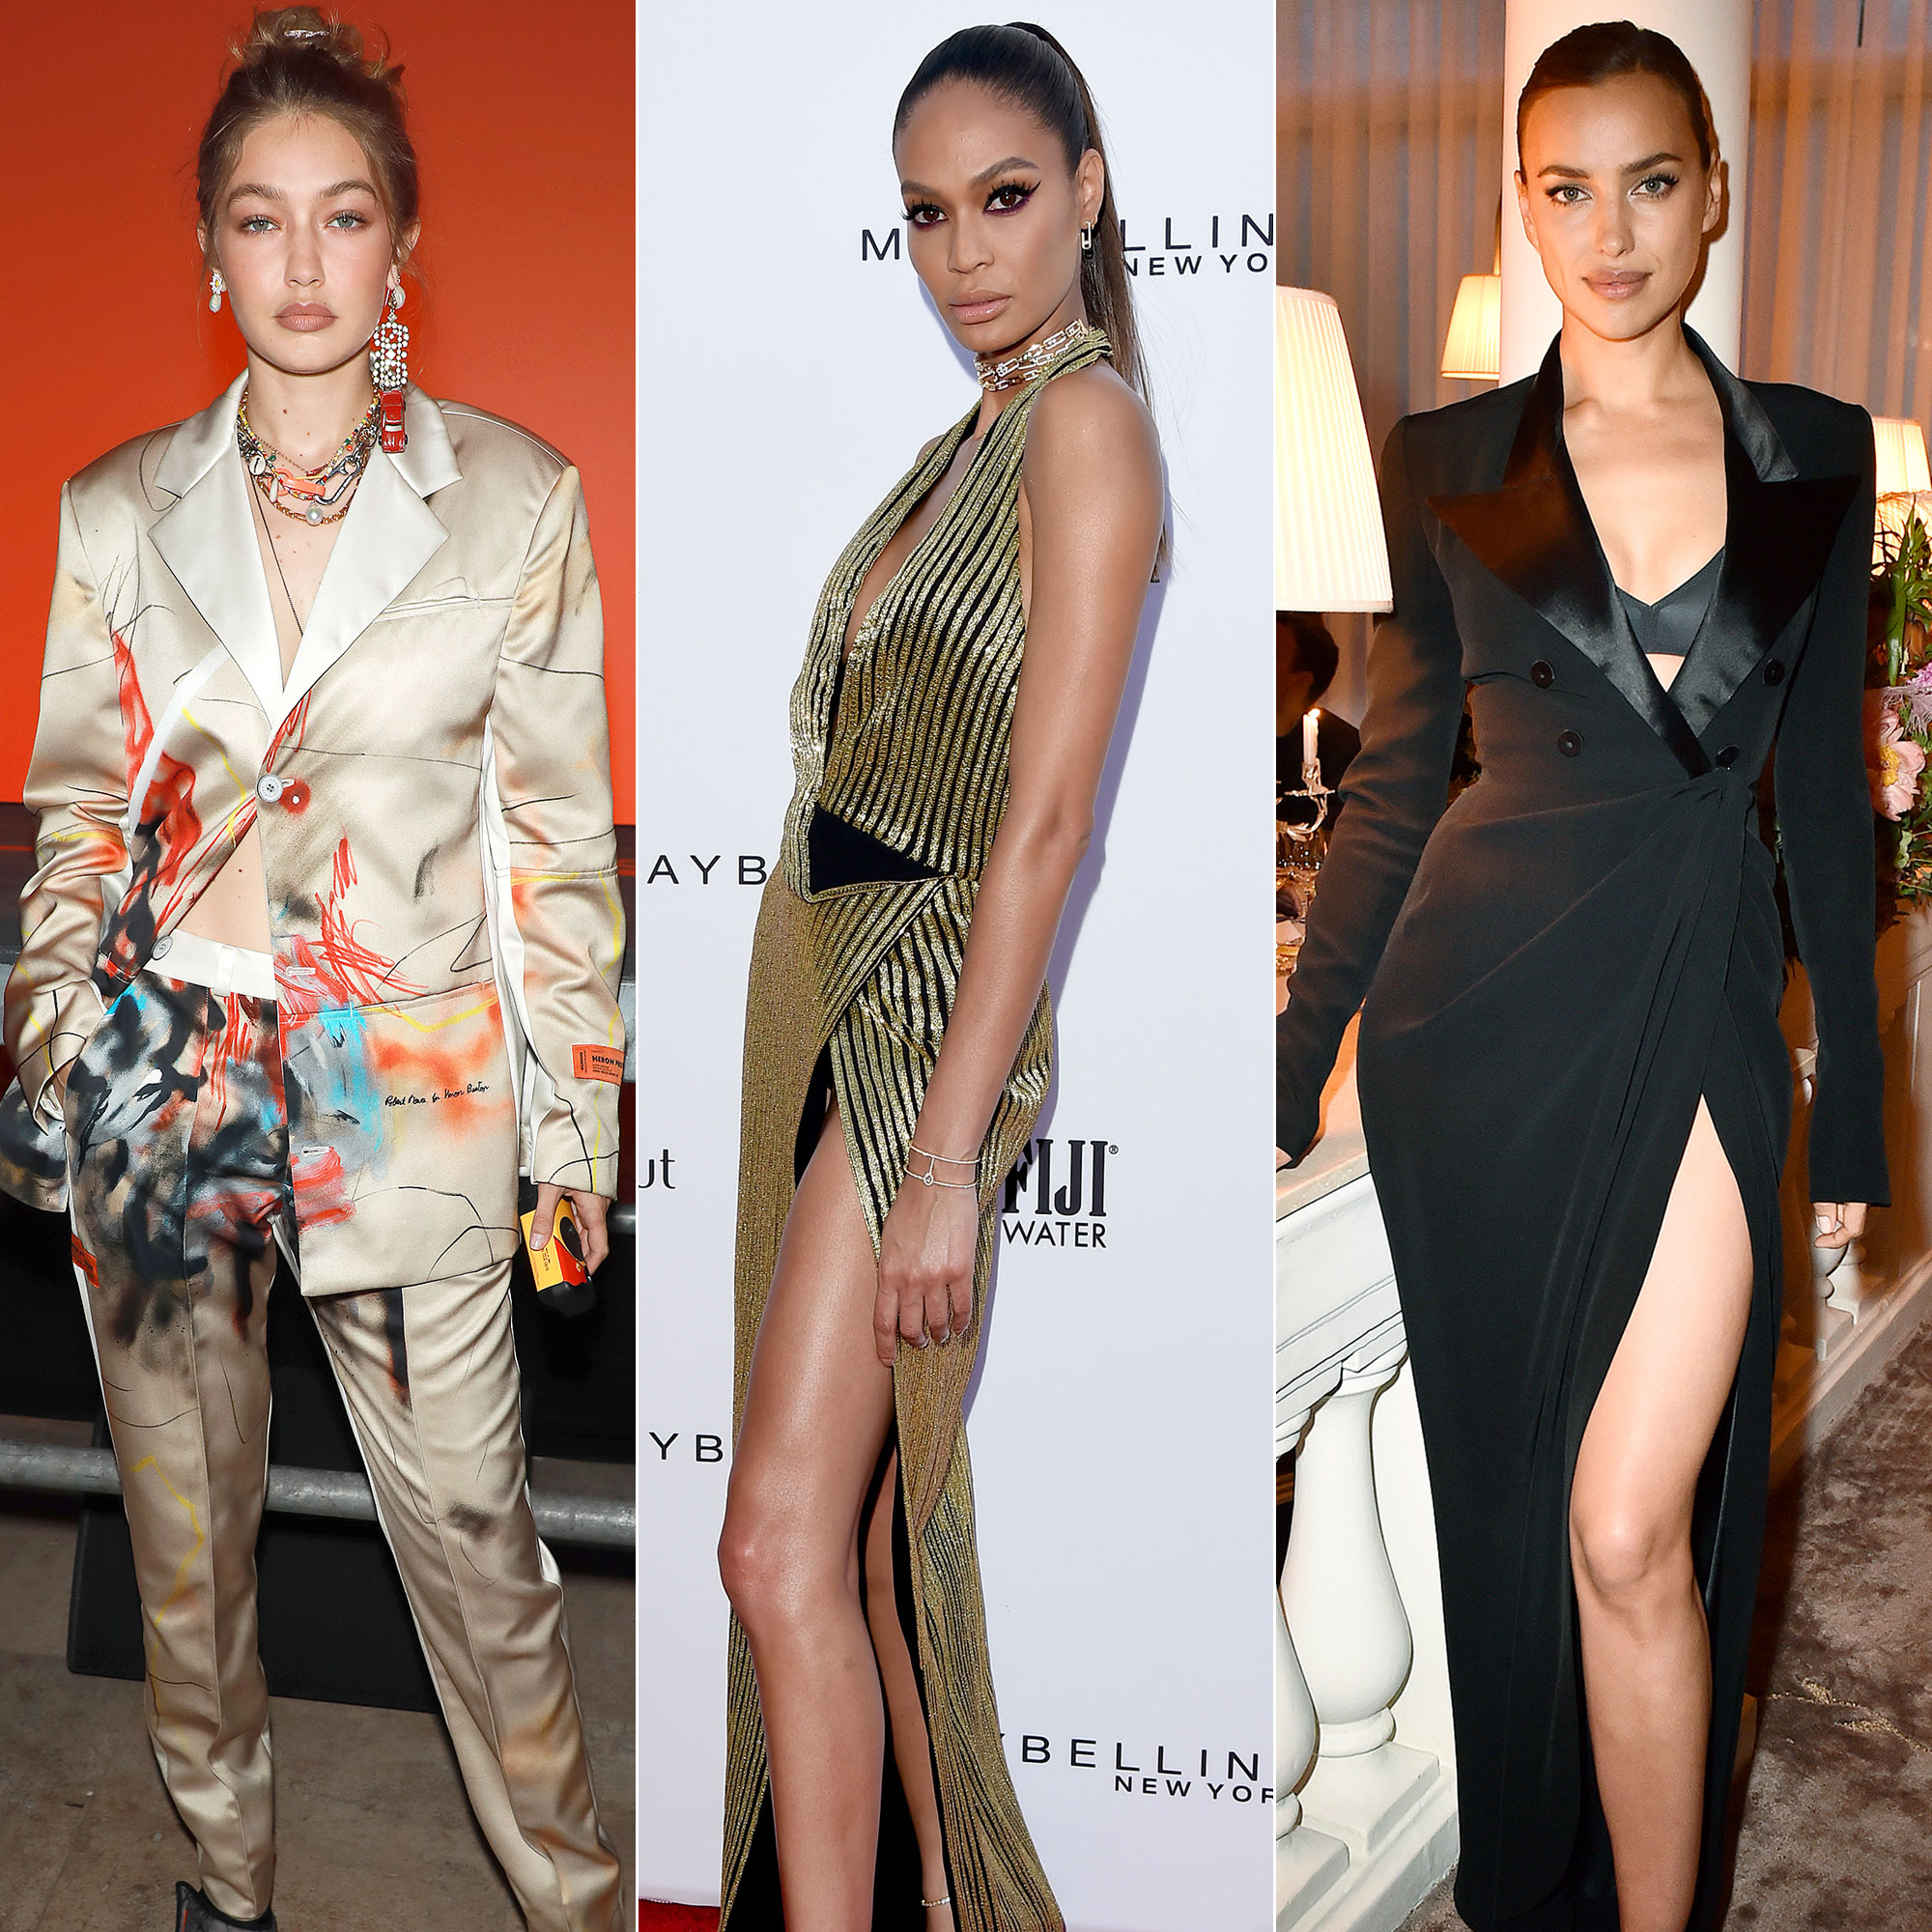 d26ab834515667 Today's Must-See: Gigi Hadid, Joan Smalls and Irina Shayk in a  Dynasty-Inspired Campaign